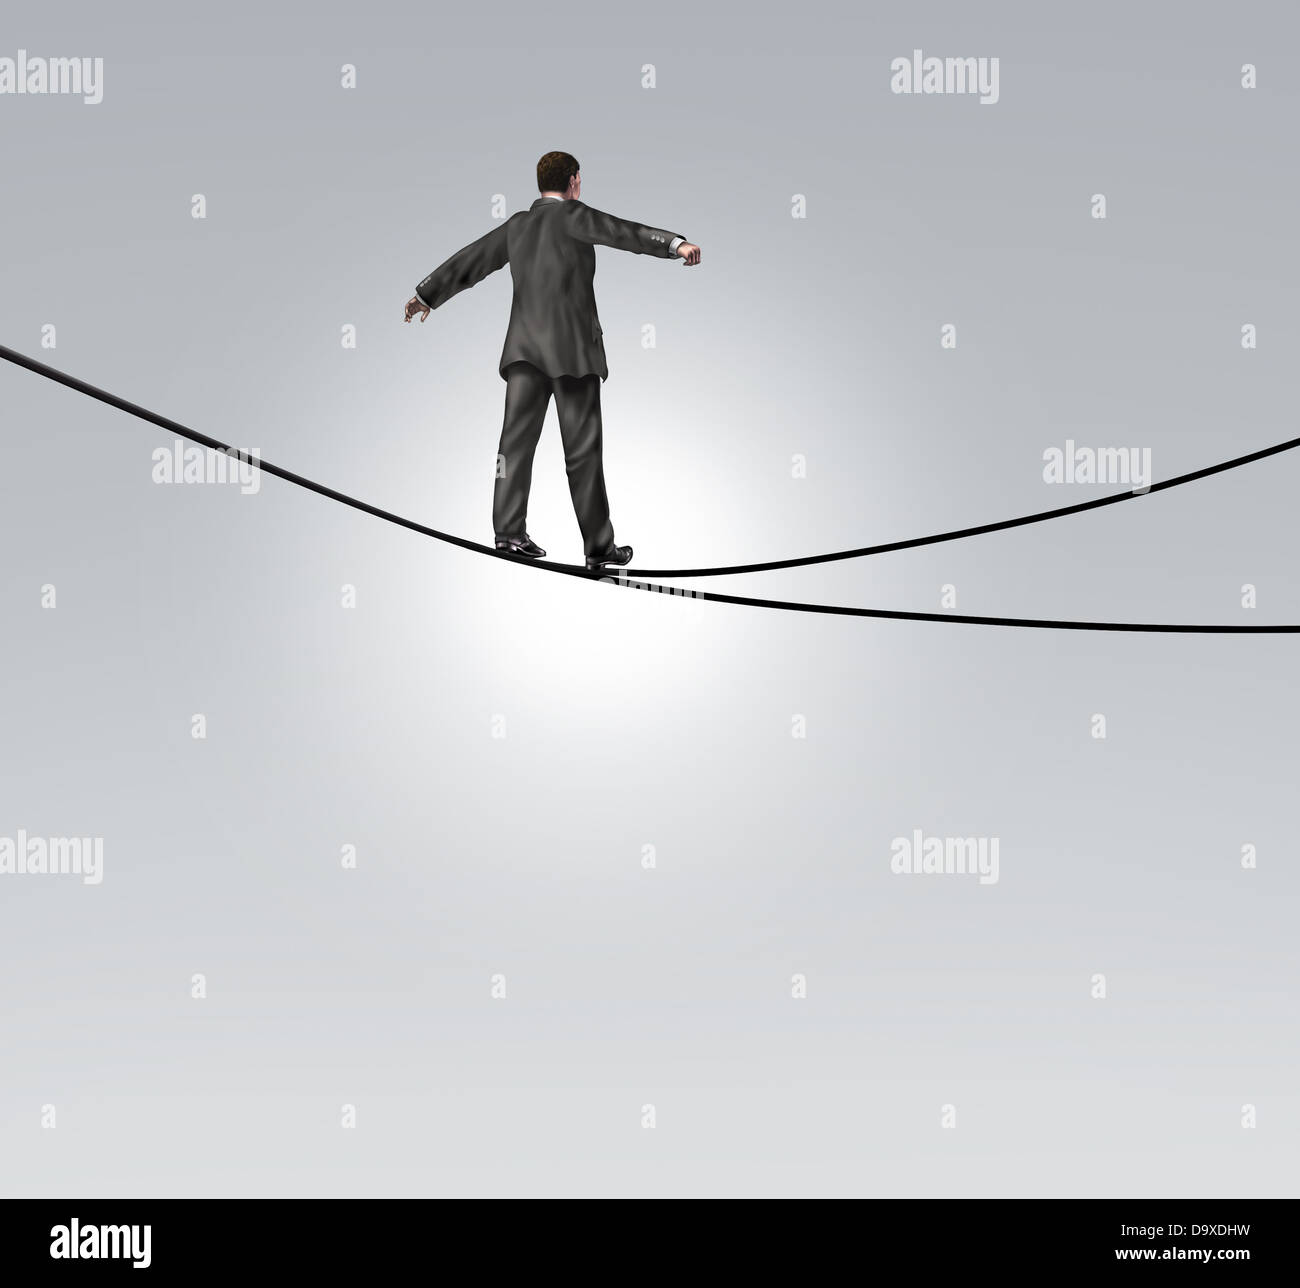 Decision risk and risky choice business concept with a businessman maintaining balance walking a high tightrope - Stock Image